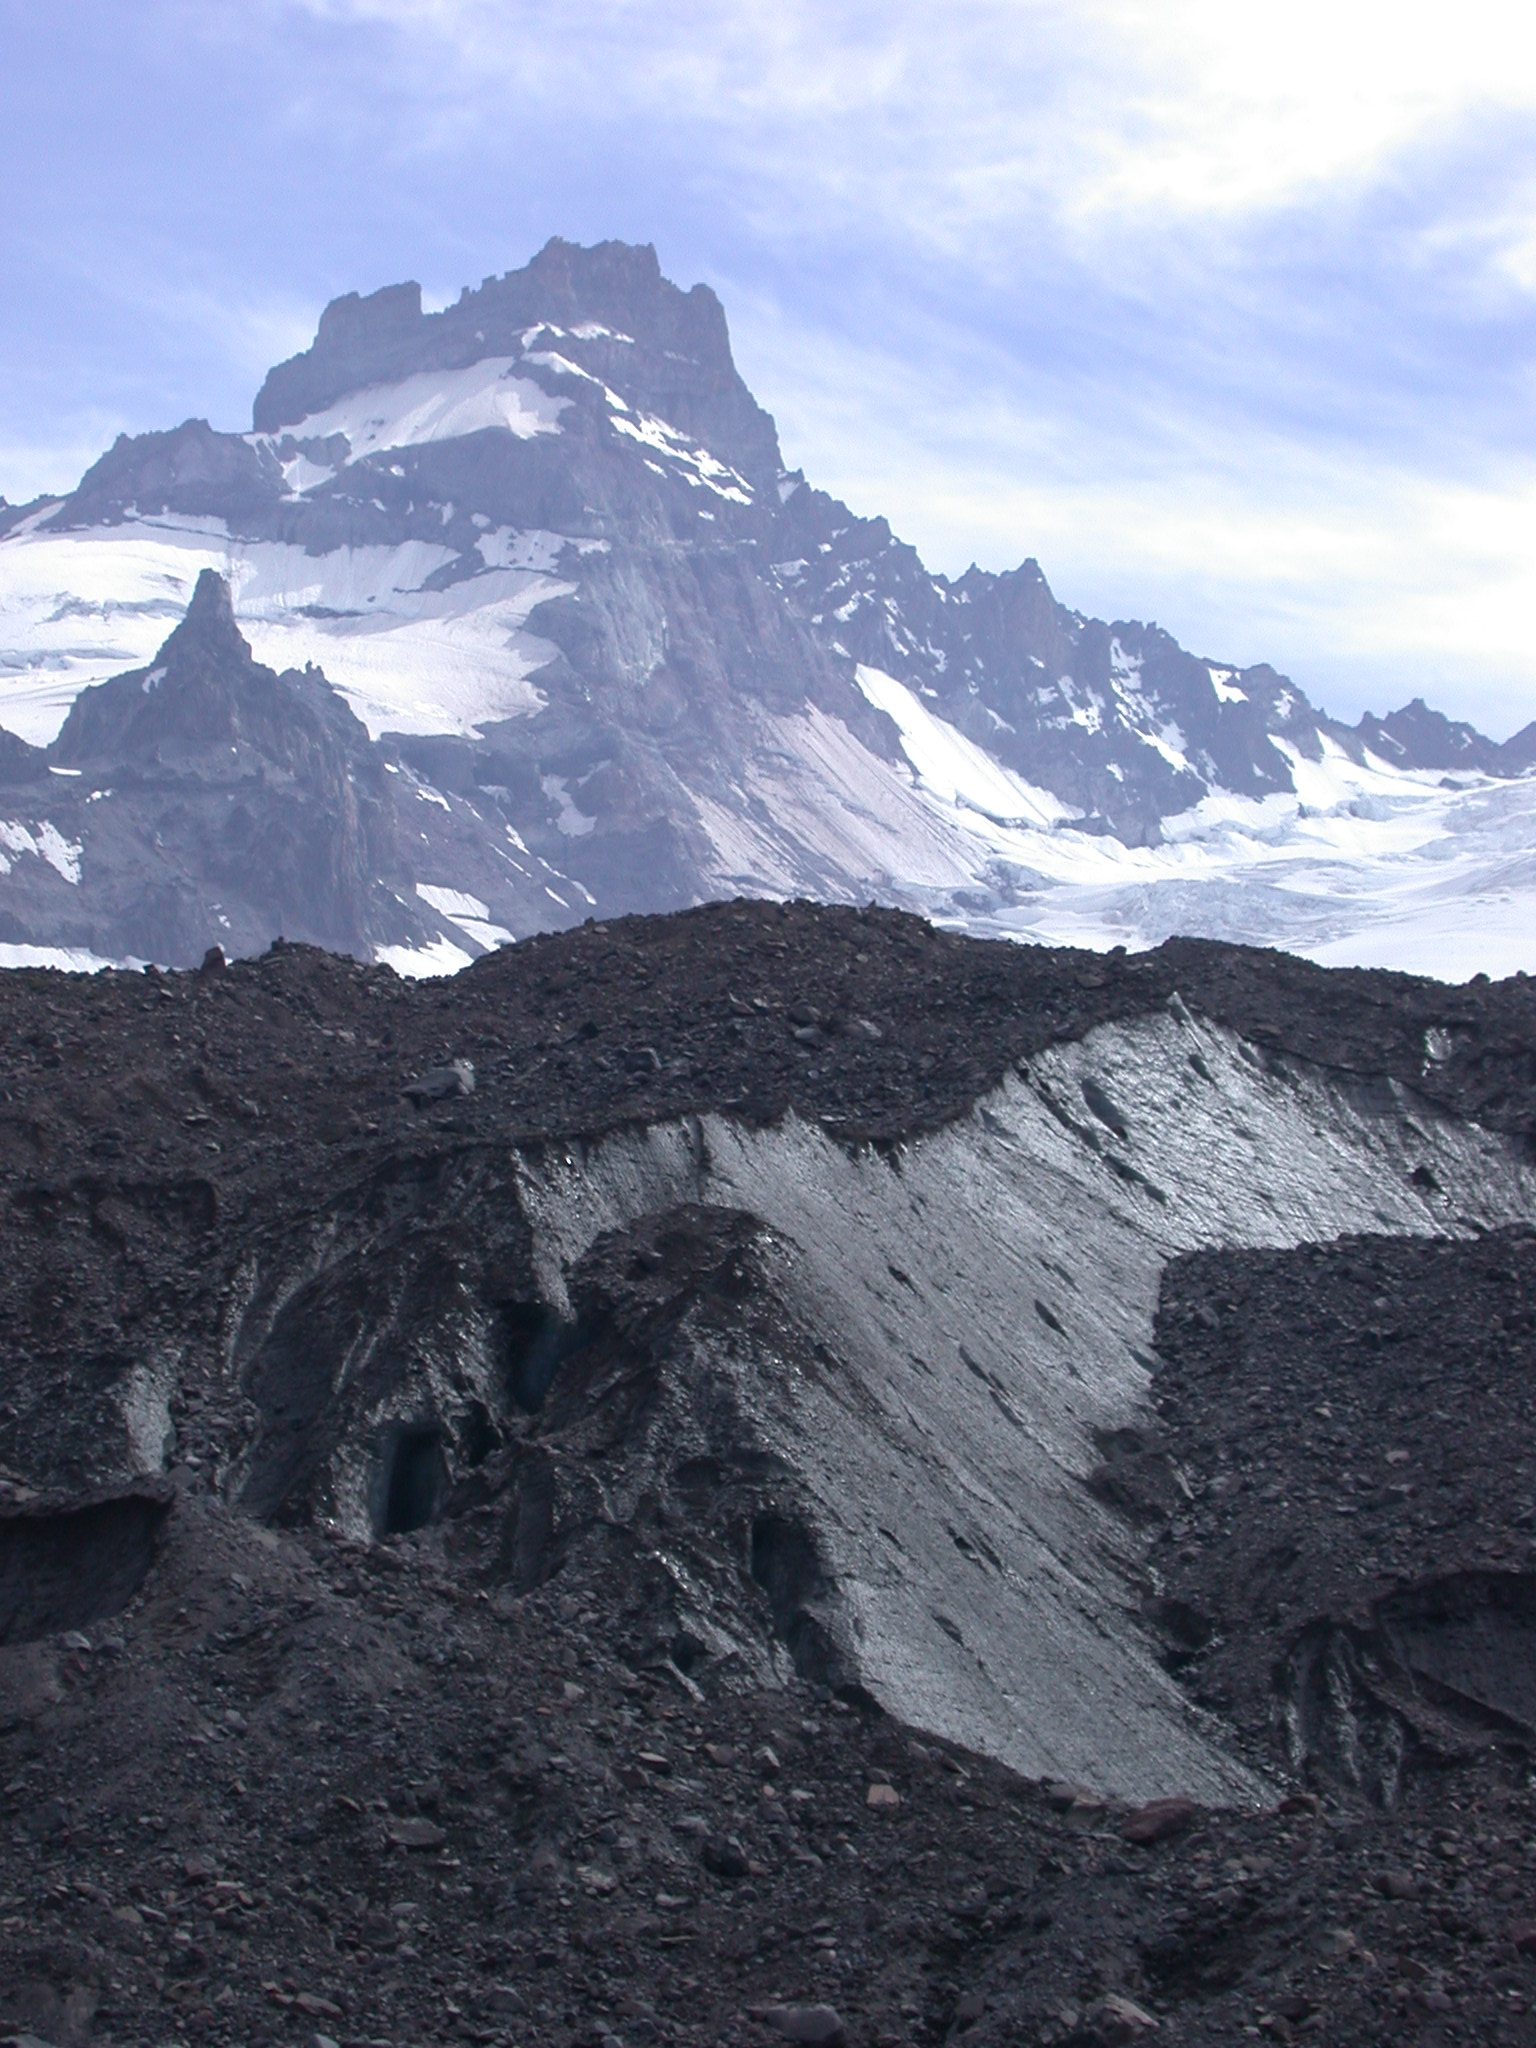 Dirty Part of Glacier Under Jagged Peak on Mount Rainier